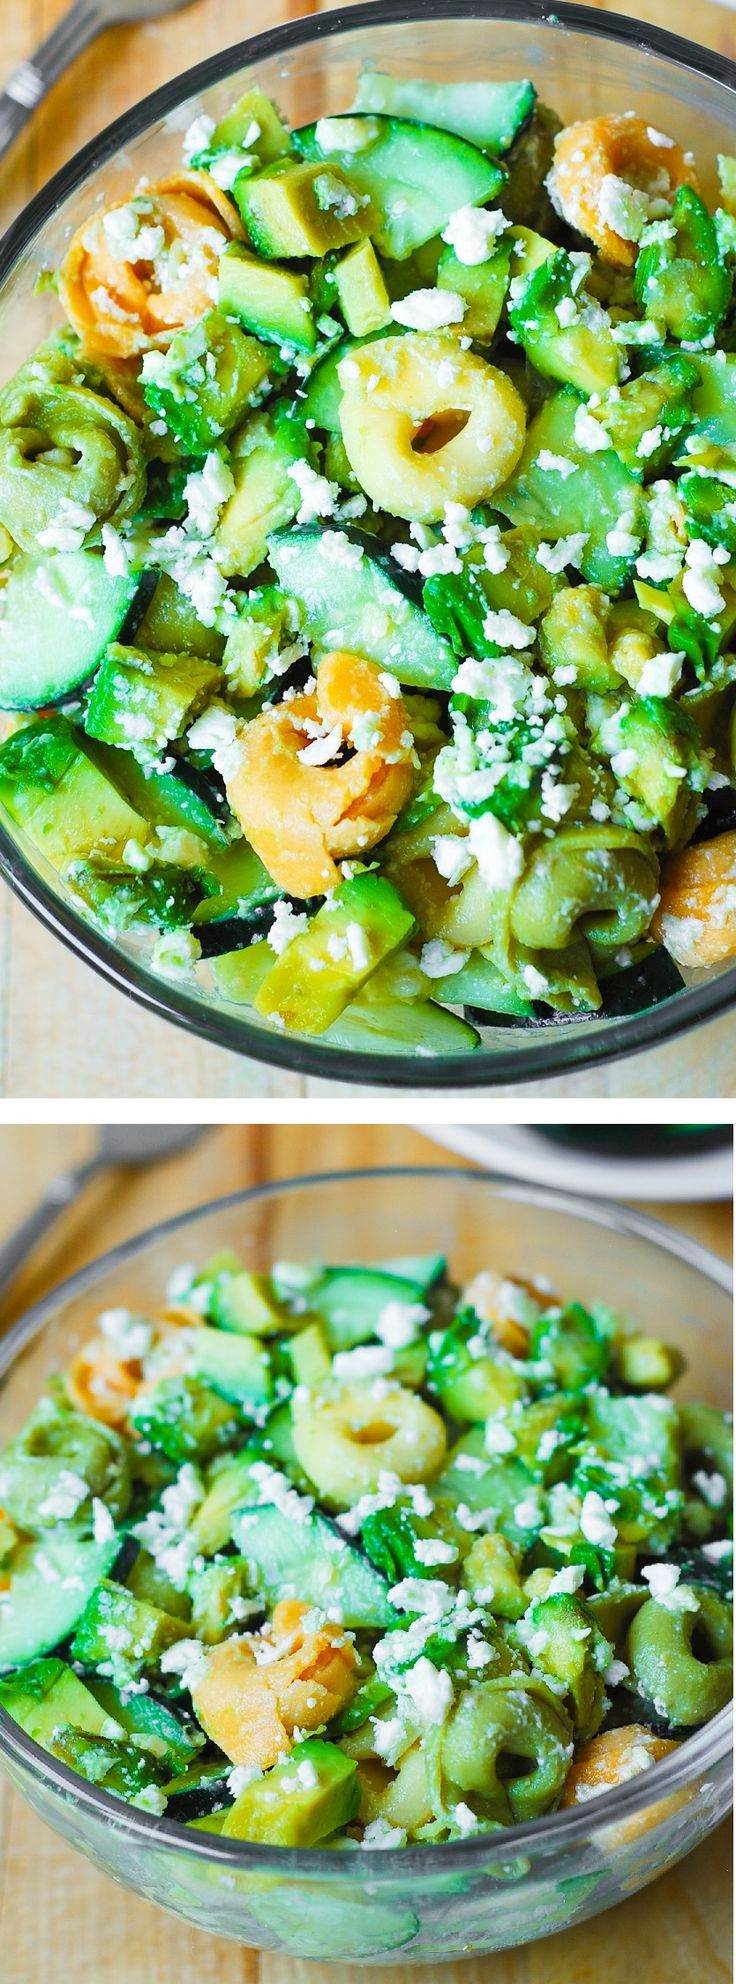 ... Salad with avocados and cucumbers in a creamy Feta Cheese Greek Salad